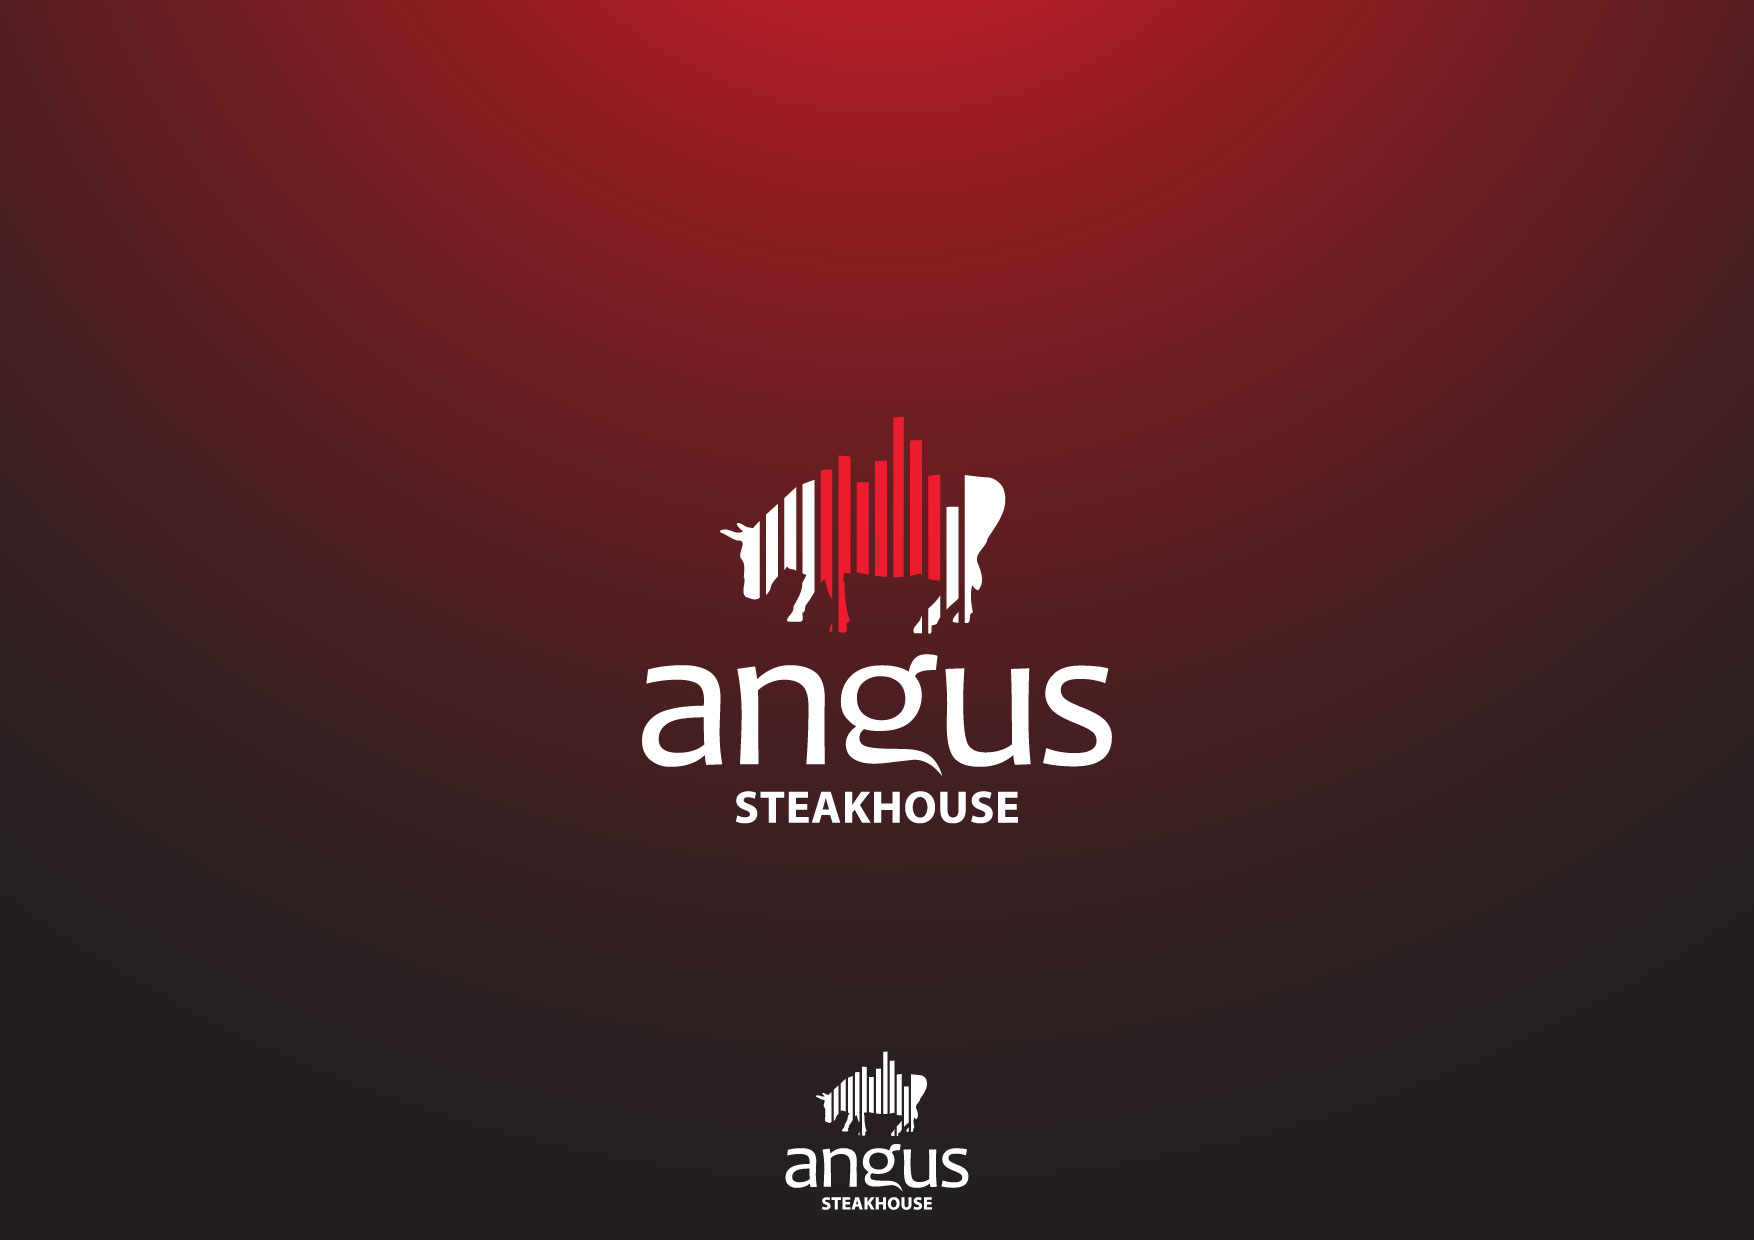 Logo Design by Nurgalih Destianto - Entry No. 72 in the Logo Design Contest Imaginative Custom Design for Angus Steakhouse.